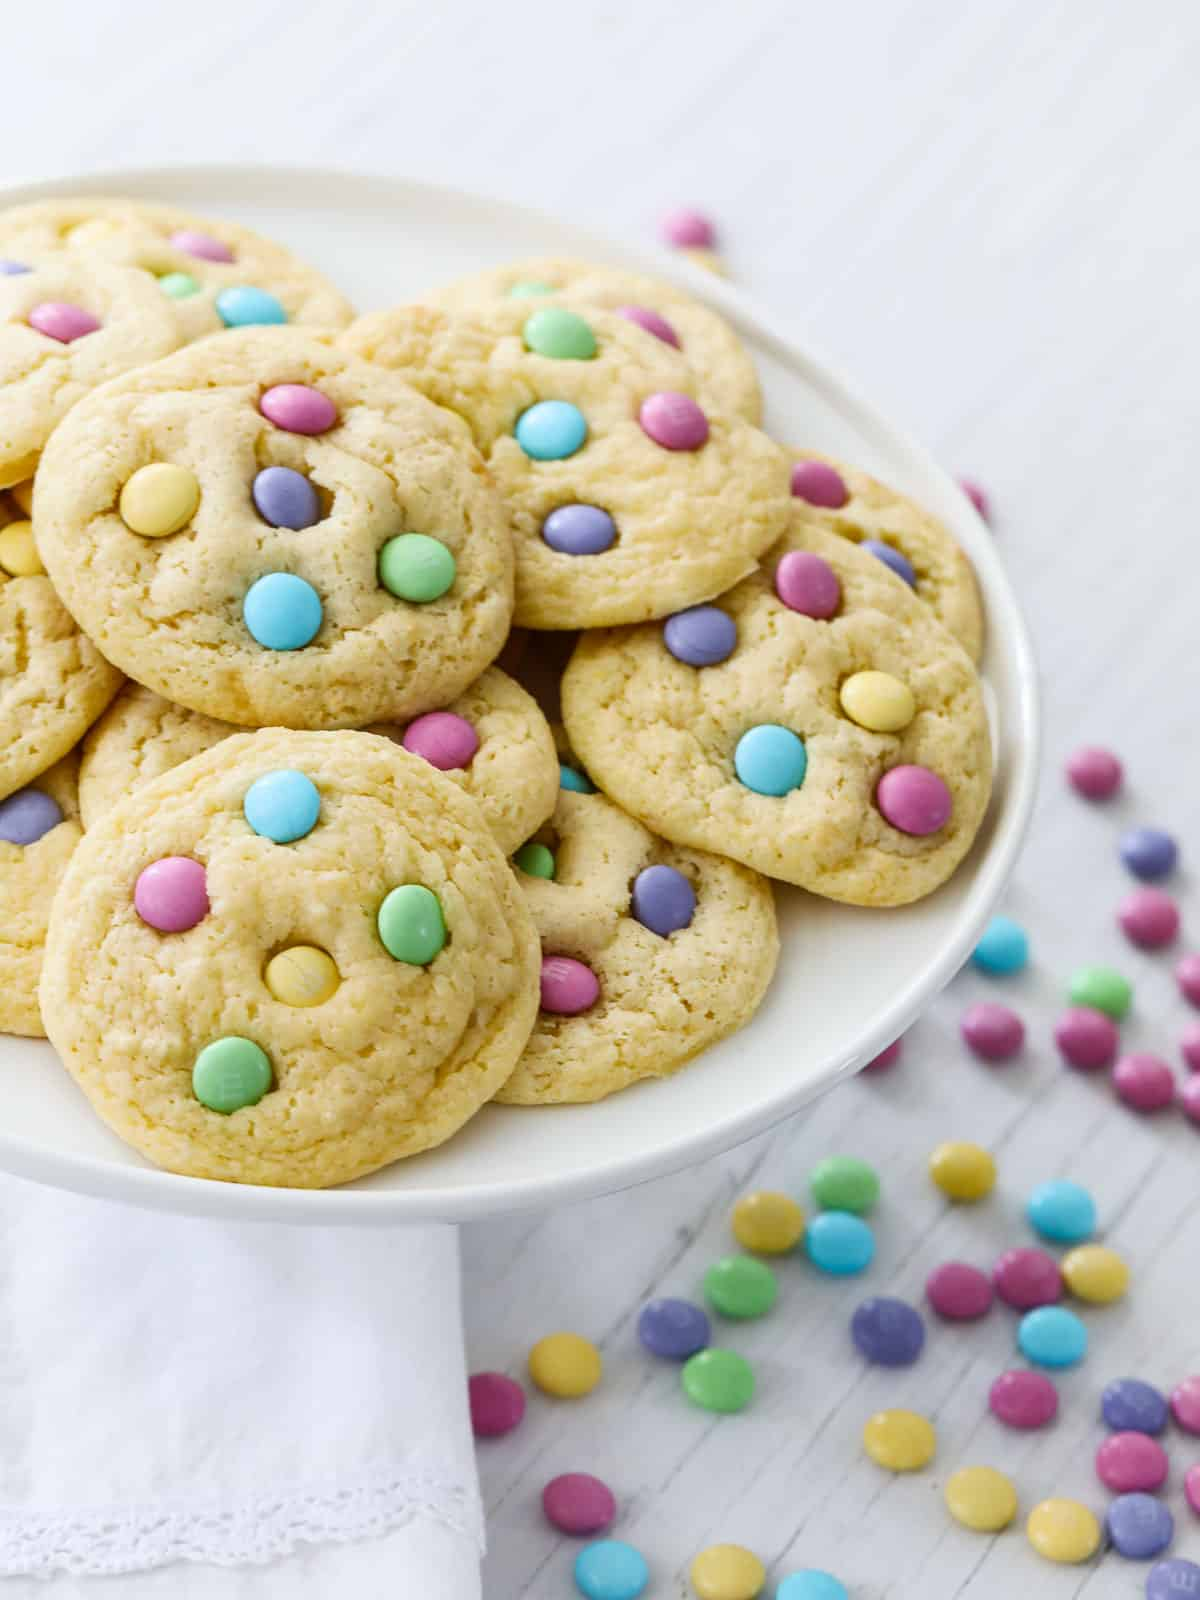 Pastel studded cake mix cookies on white cake plate.